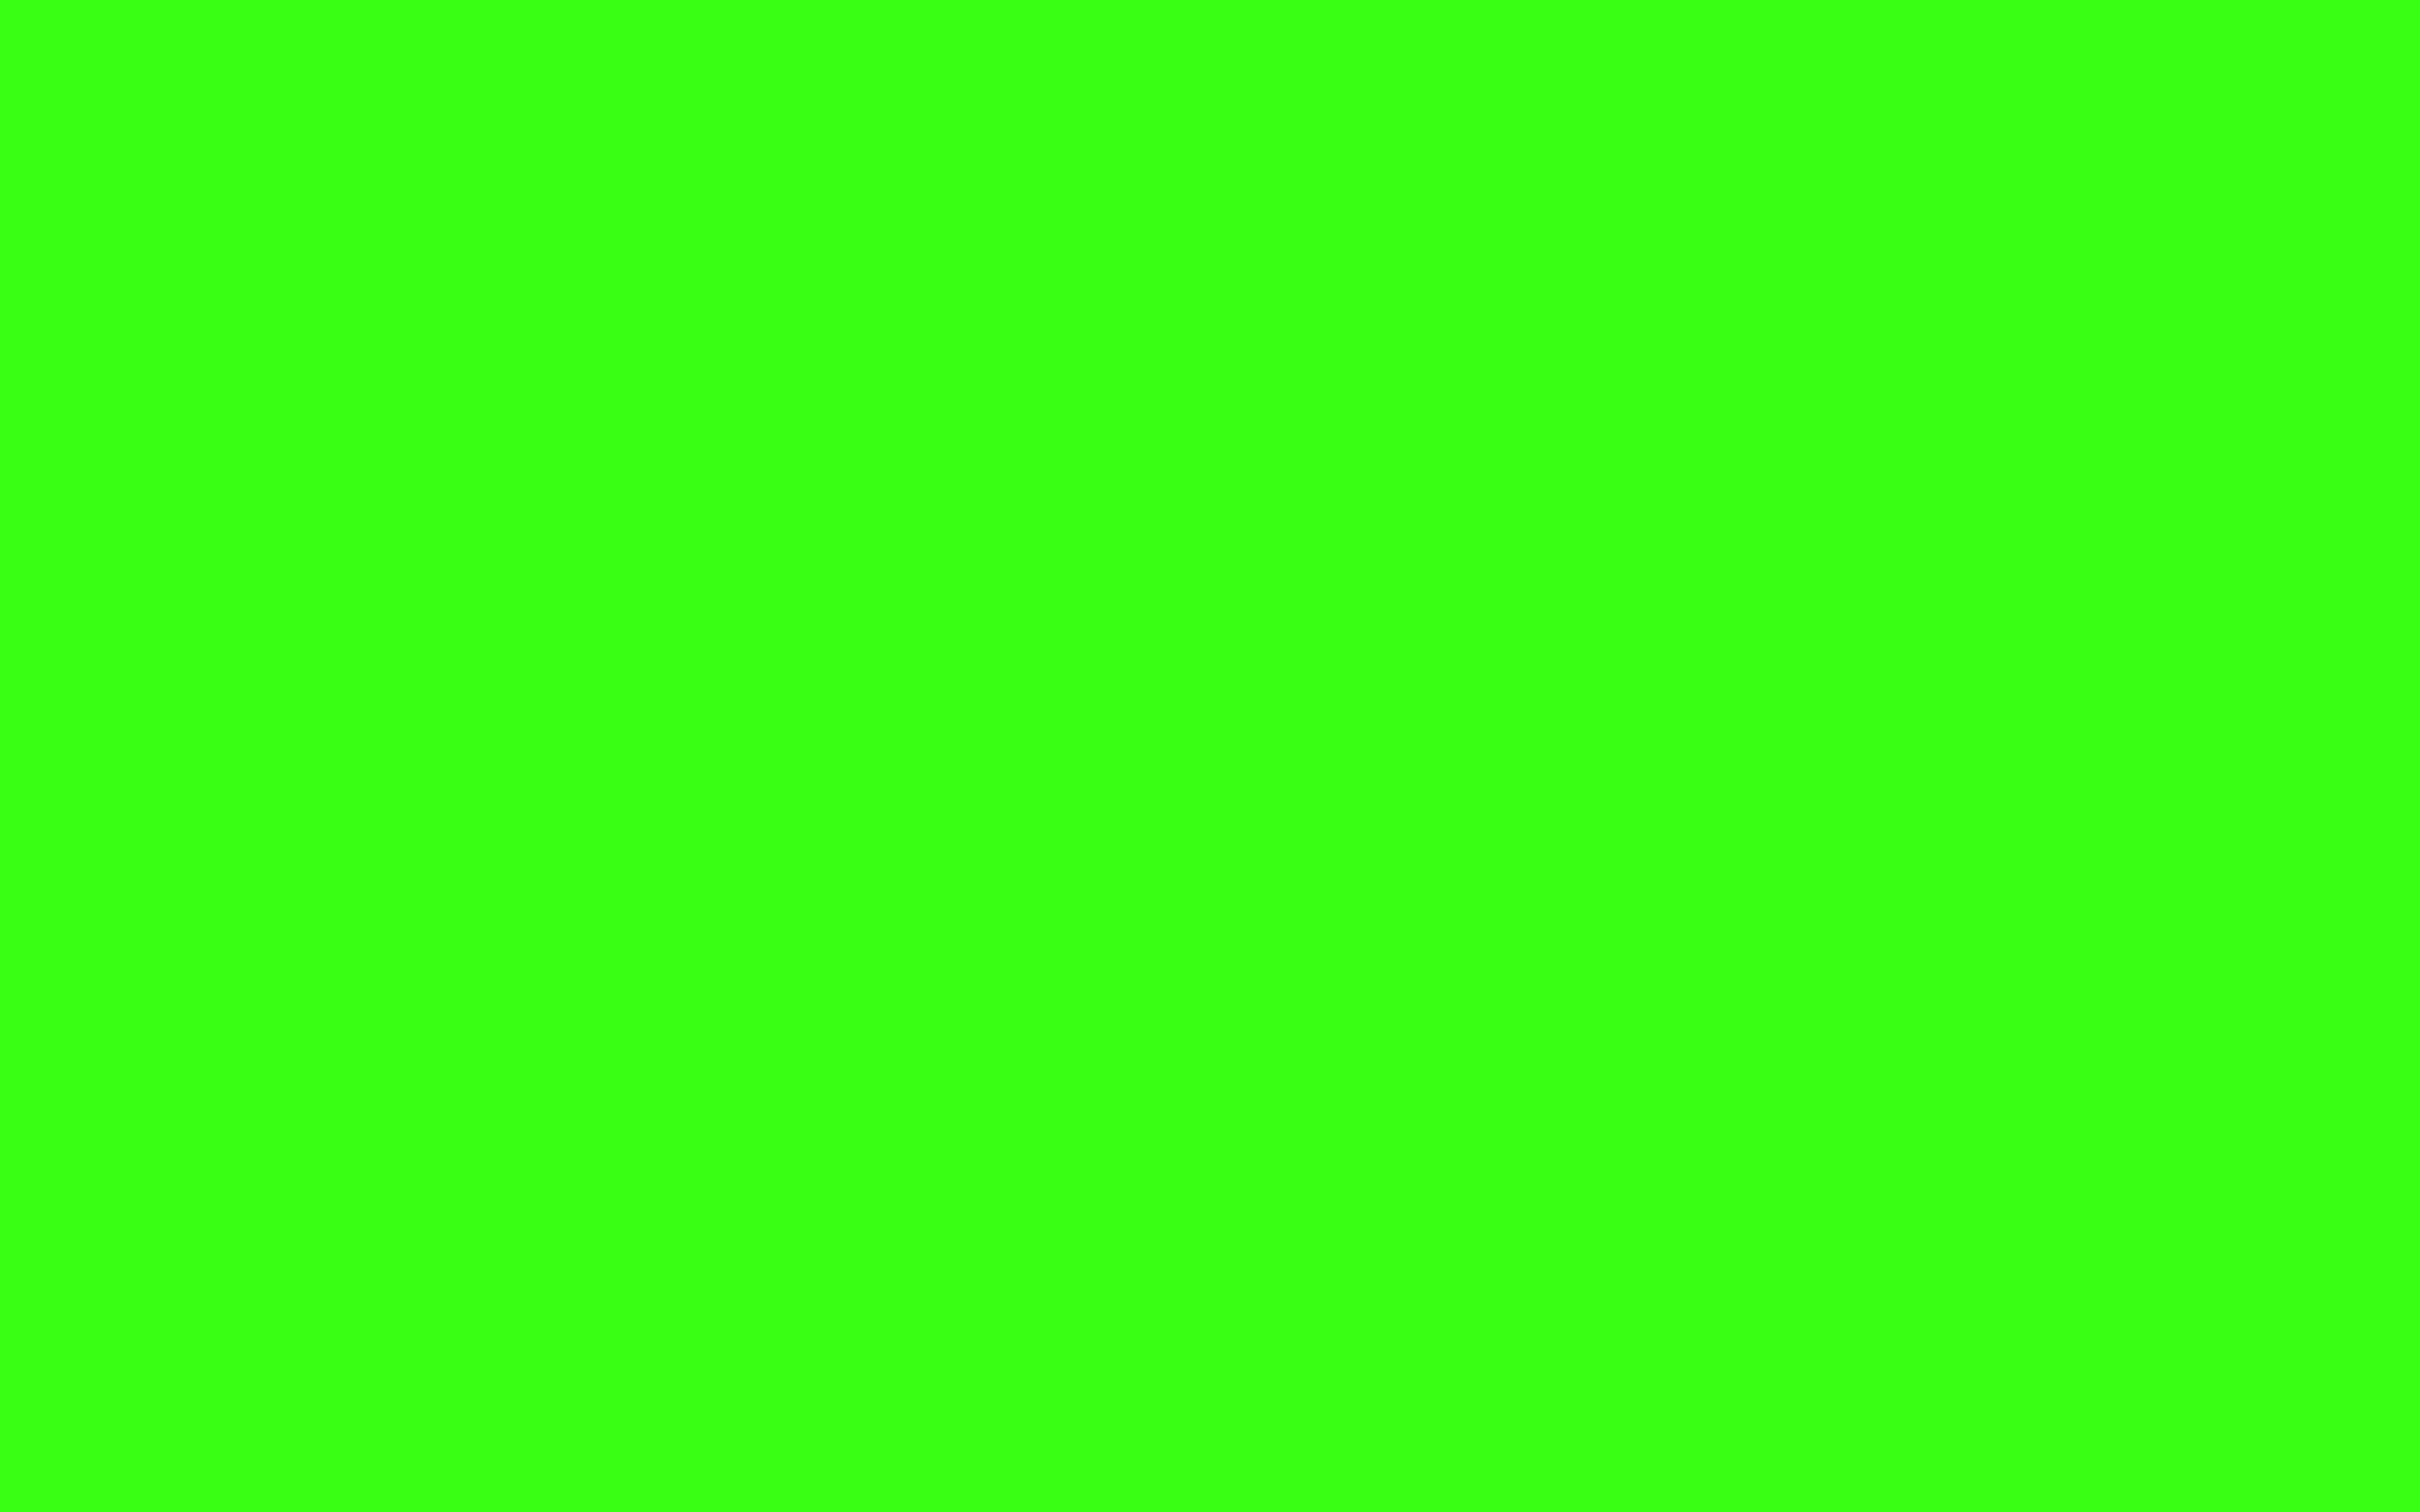 Green solid color background view and download the below background 2560x1600